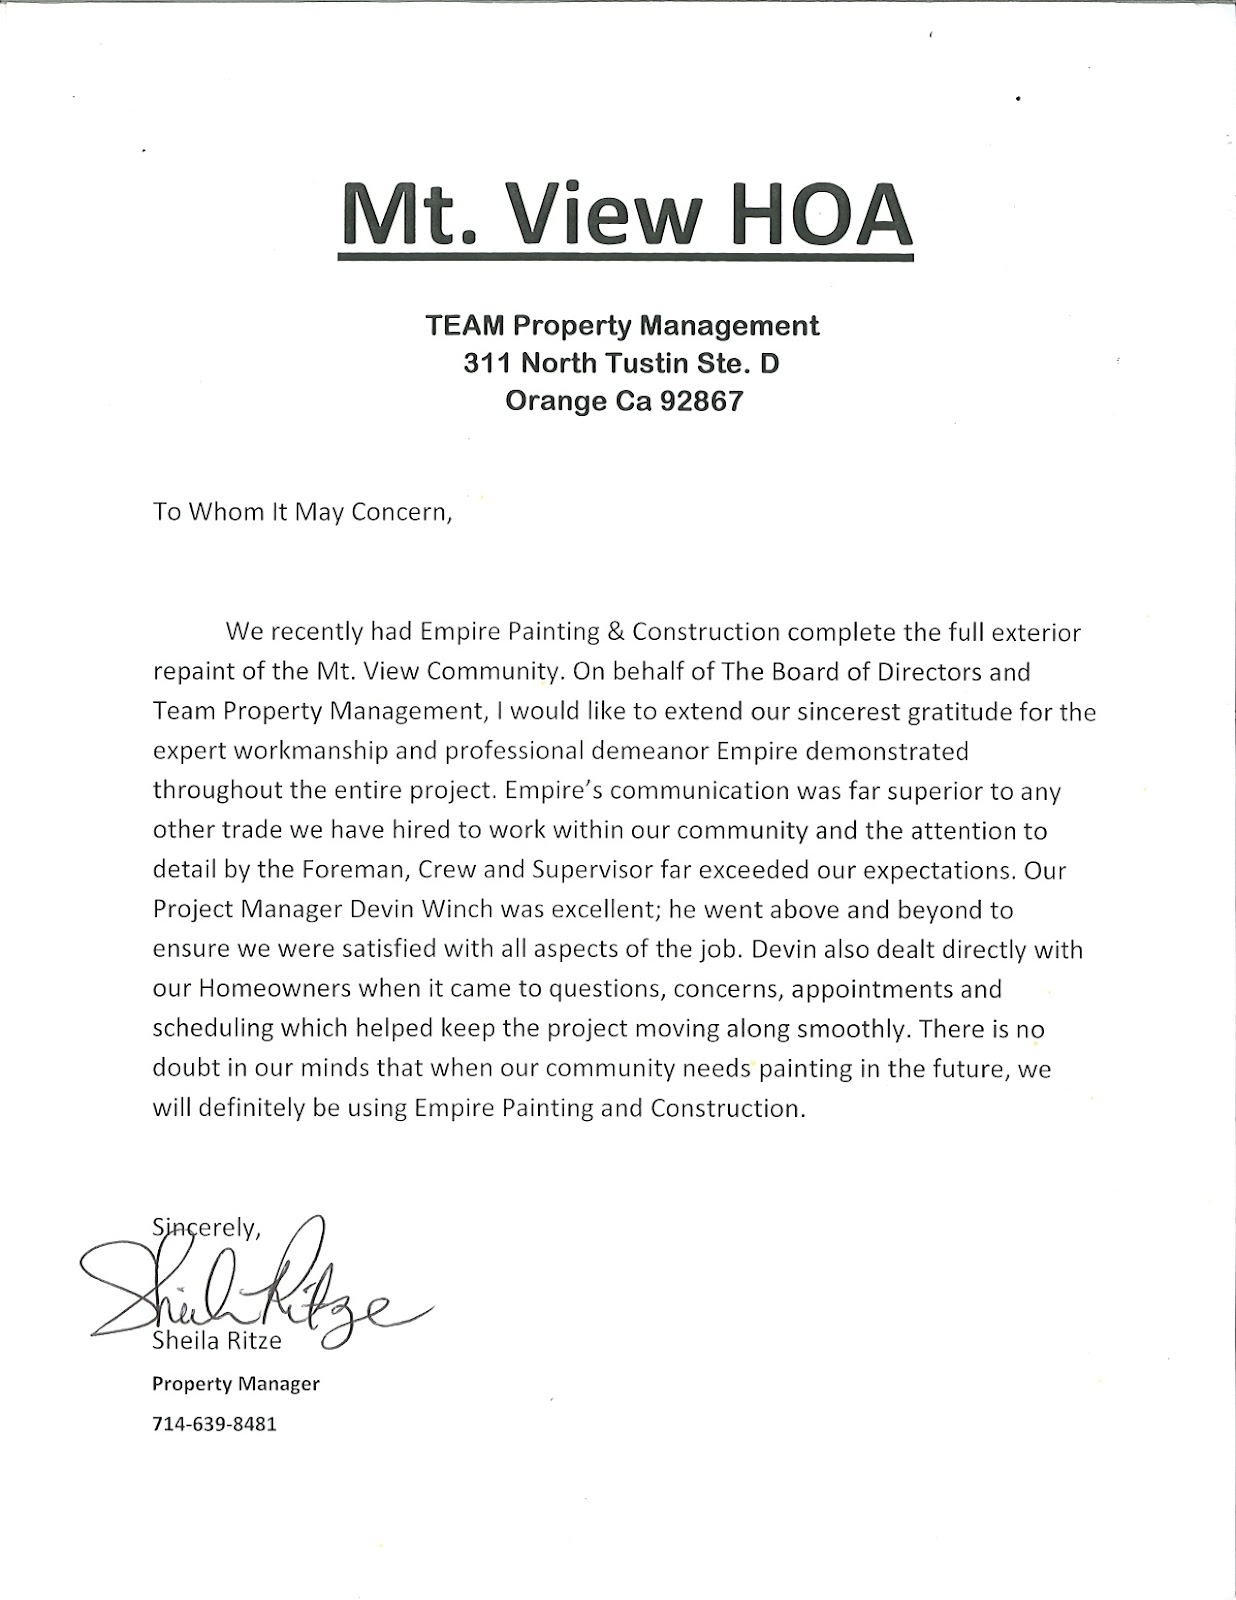 Dispute hoa letter 28 images 26 best images about hoa on hoa dispute hoa letter hoa architectural letter pictures to pin on pinsdaddy spiritdancerdesigns Images